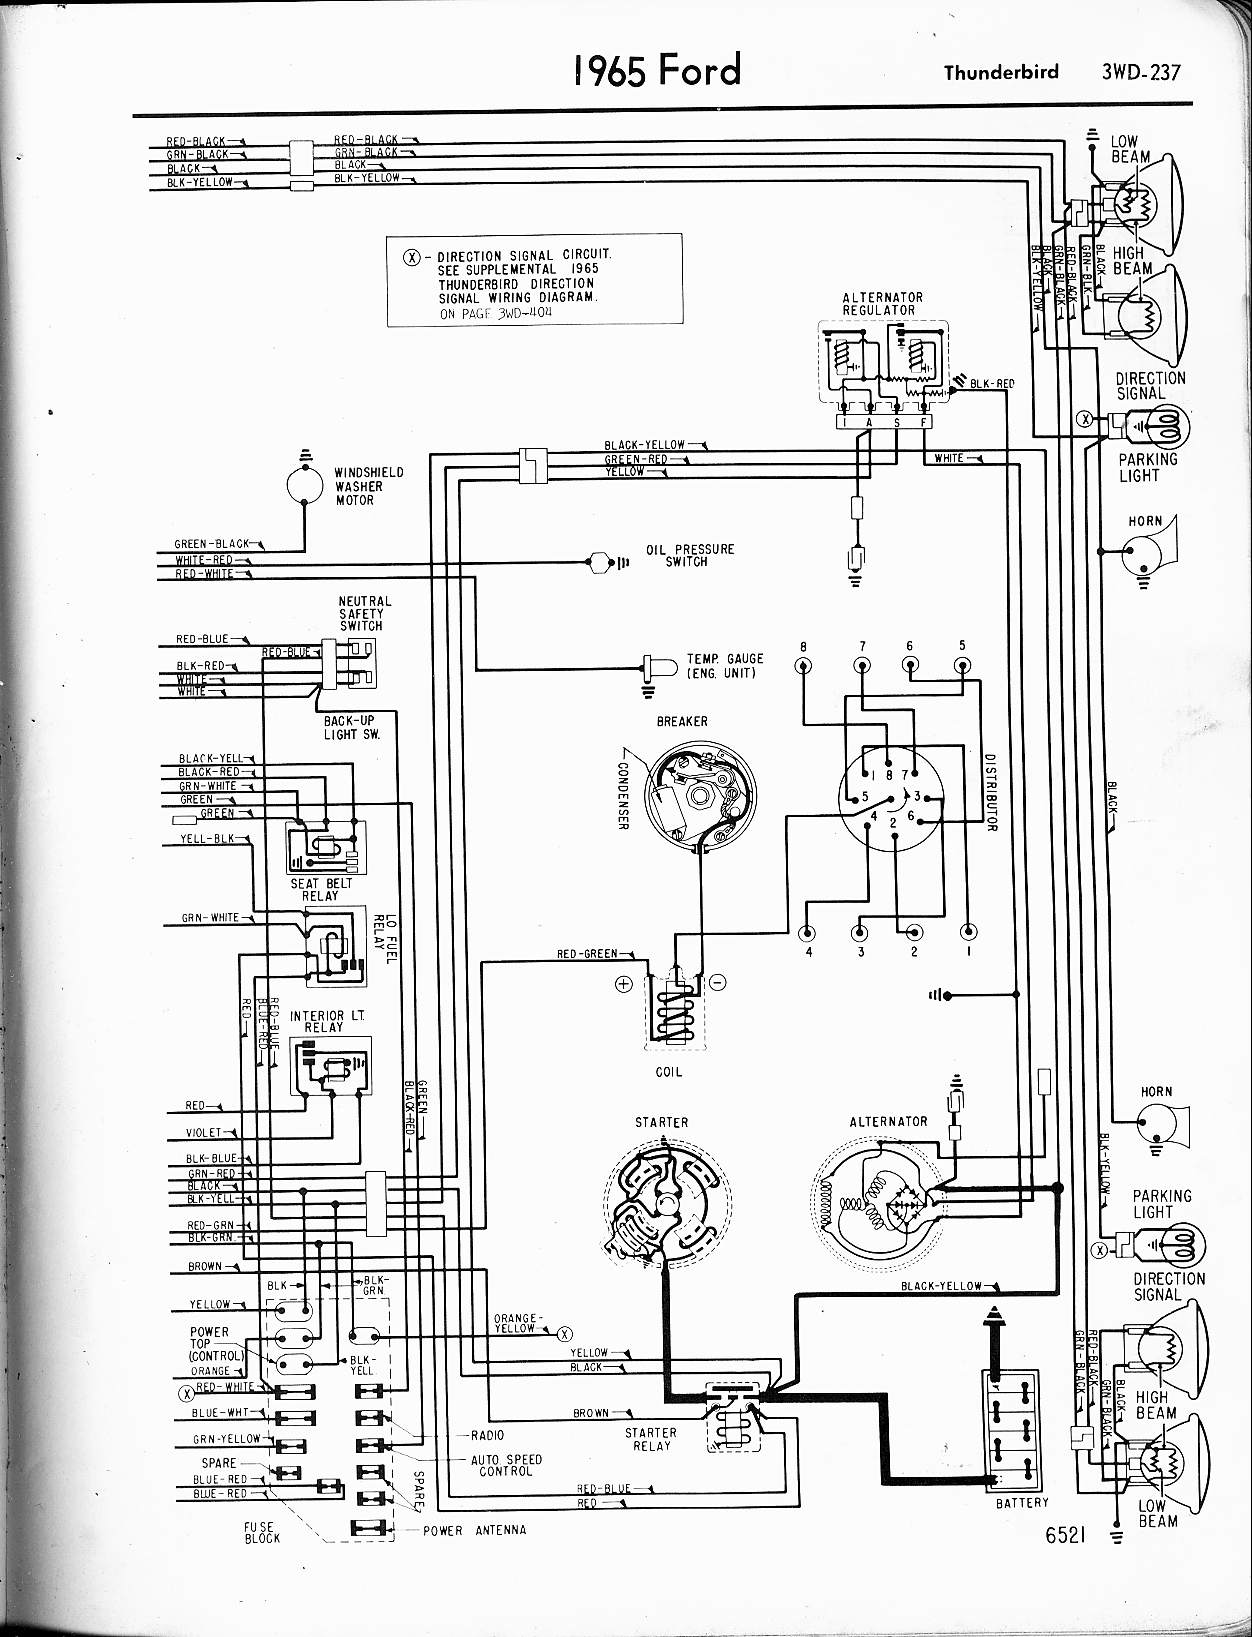 1960 Ford F100 Steering Column Wiring Diagram Trusted 1964 Falcon 57 65 Diagrams Rh Oldcarmanualproject Com 2001 F 150